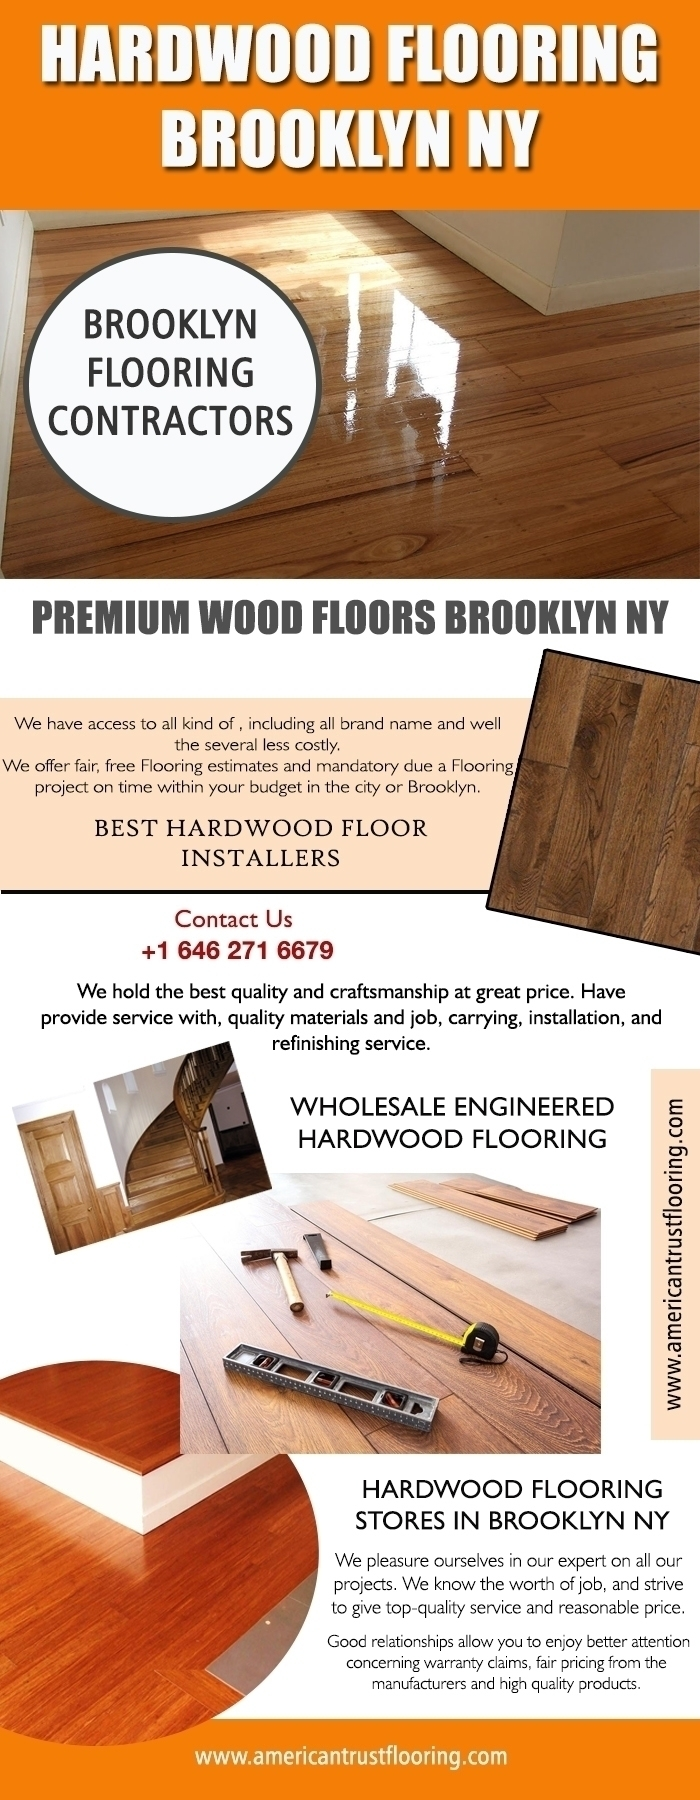 Website: Hardwood Flooring Broo - woodfloorsnyc | ello